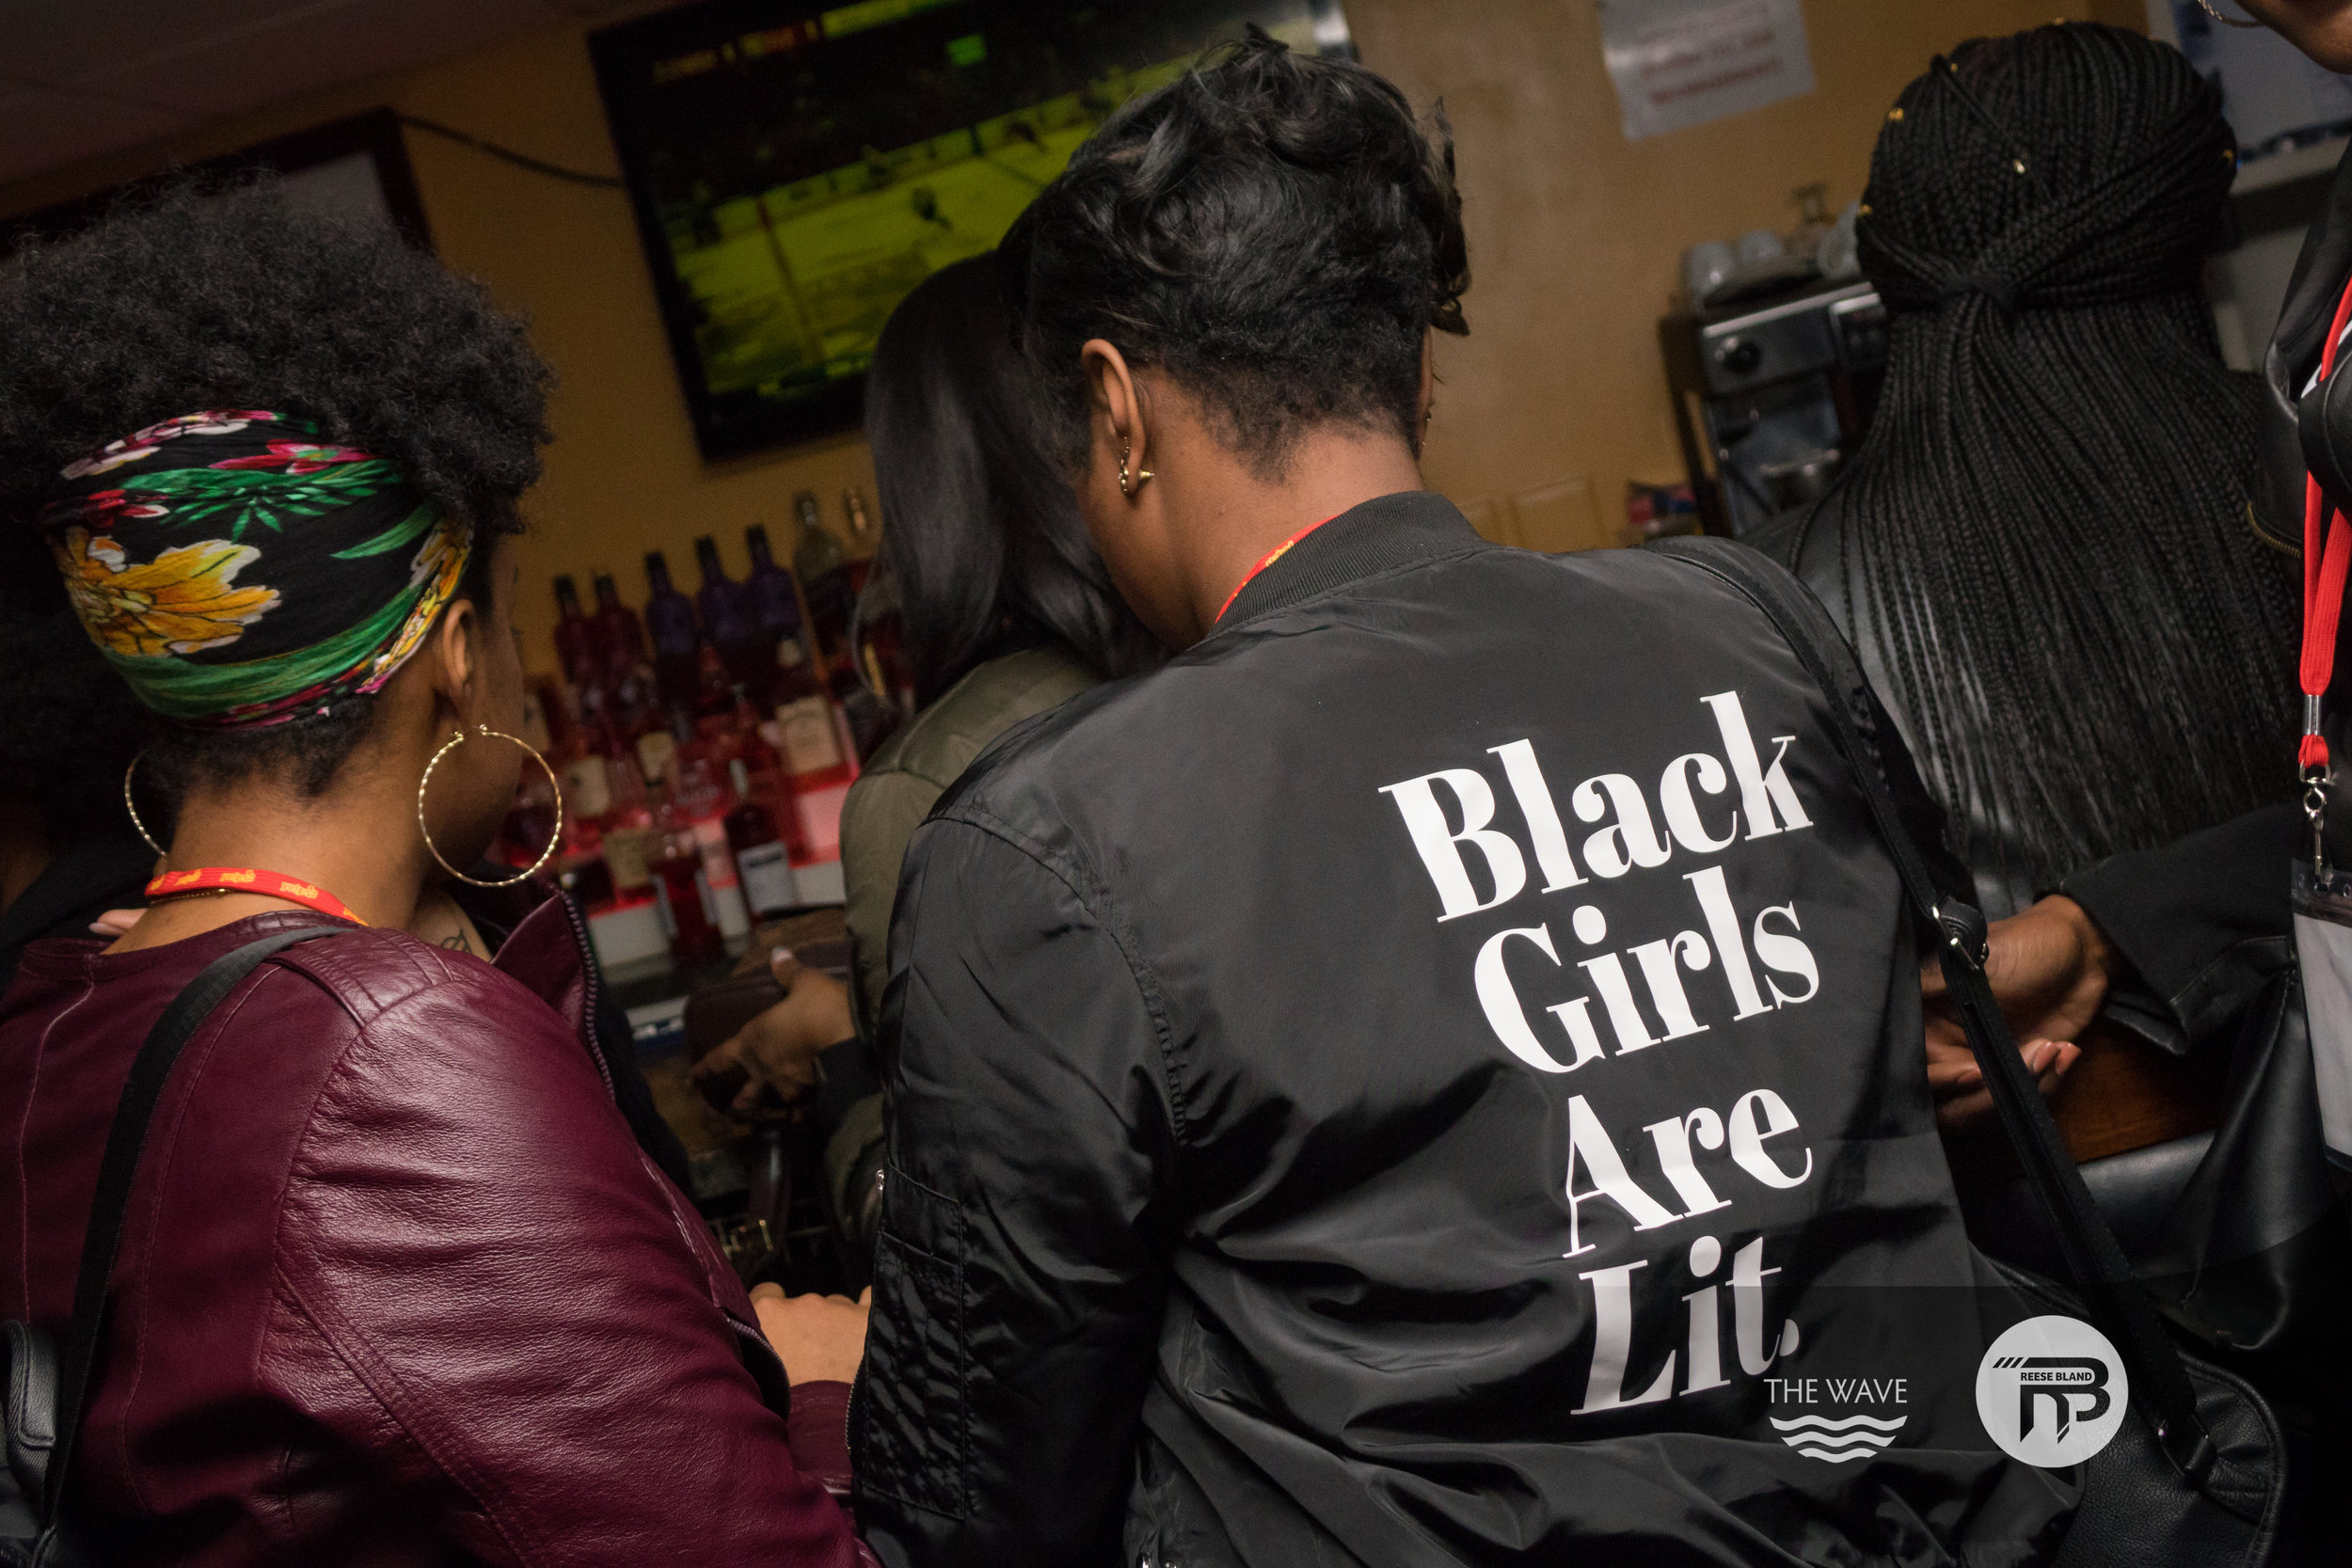 WaveDC-BlackBarCrawl-2-2018-06532.jpg